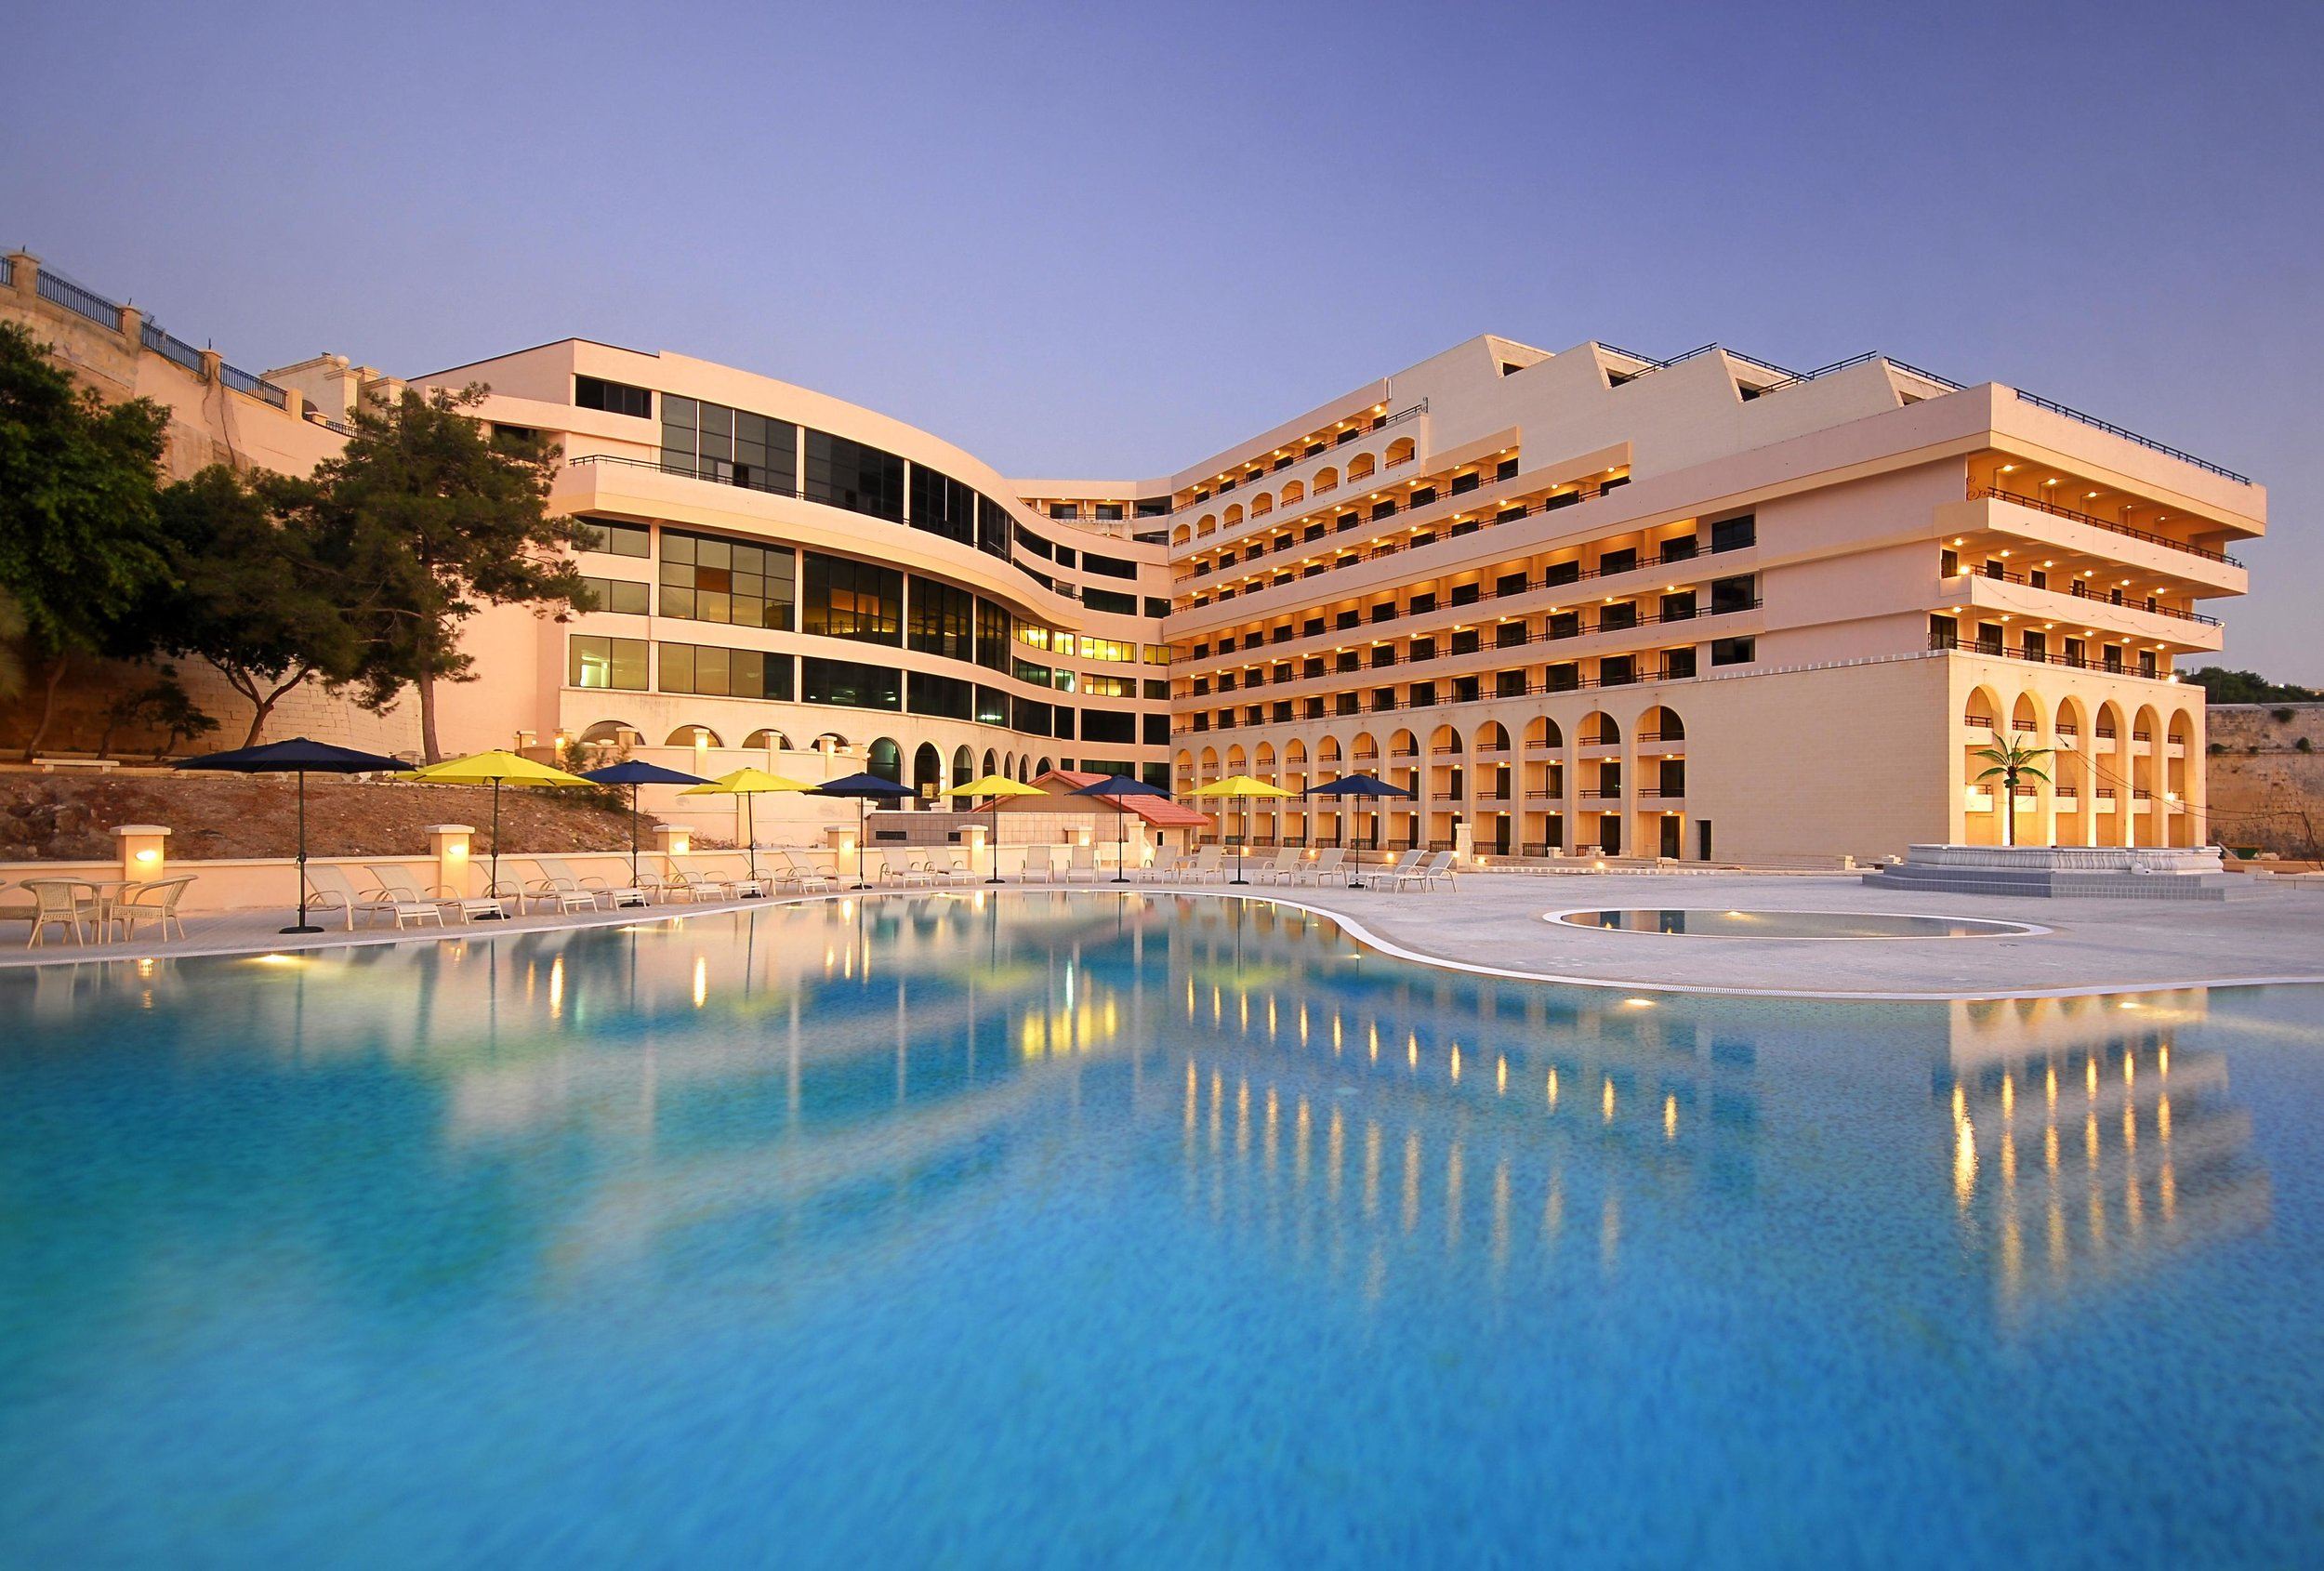 Grand Hotel Excelsior Facade + Pool View (Evening).JPG